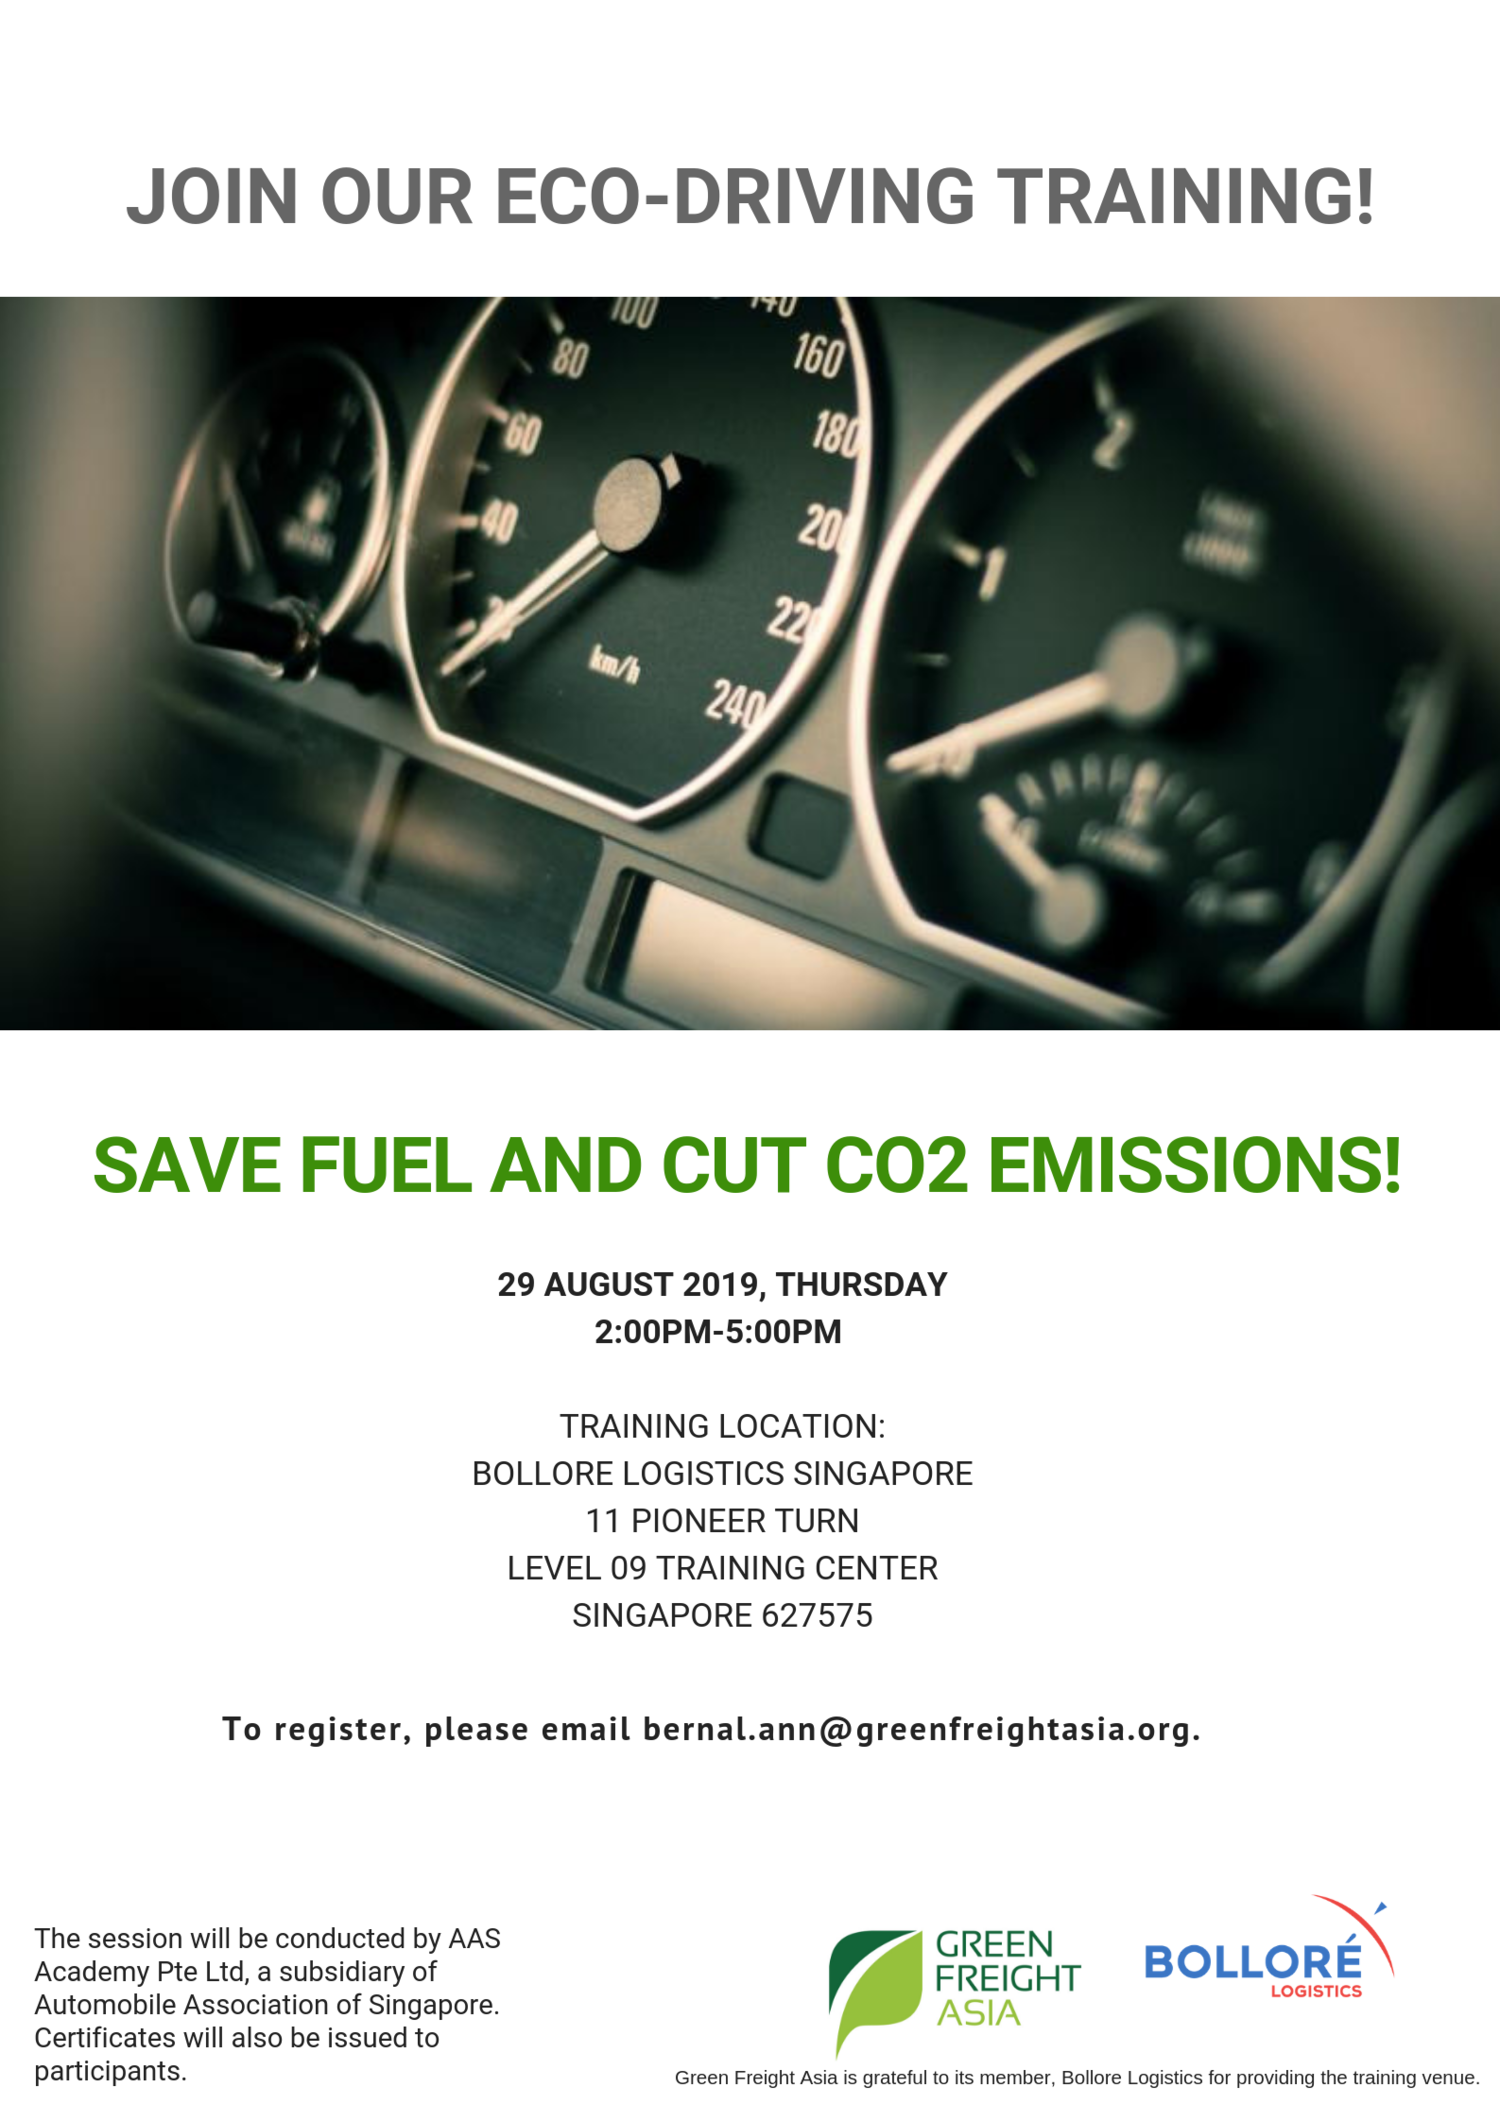 Register at our 29 August Eco-driving Training (Singapore